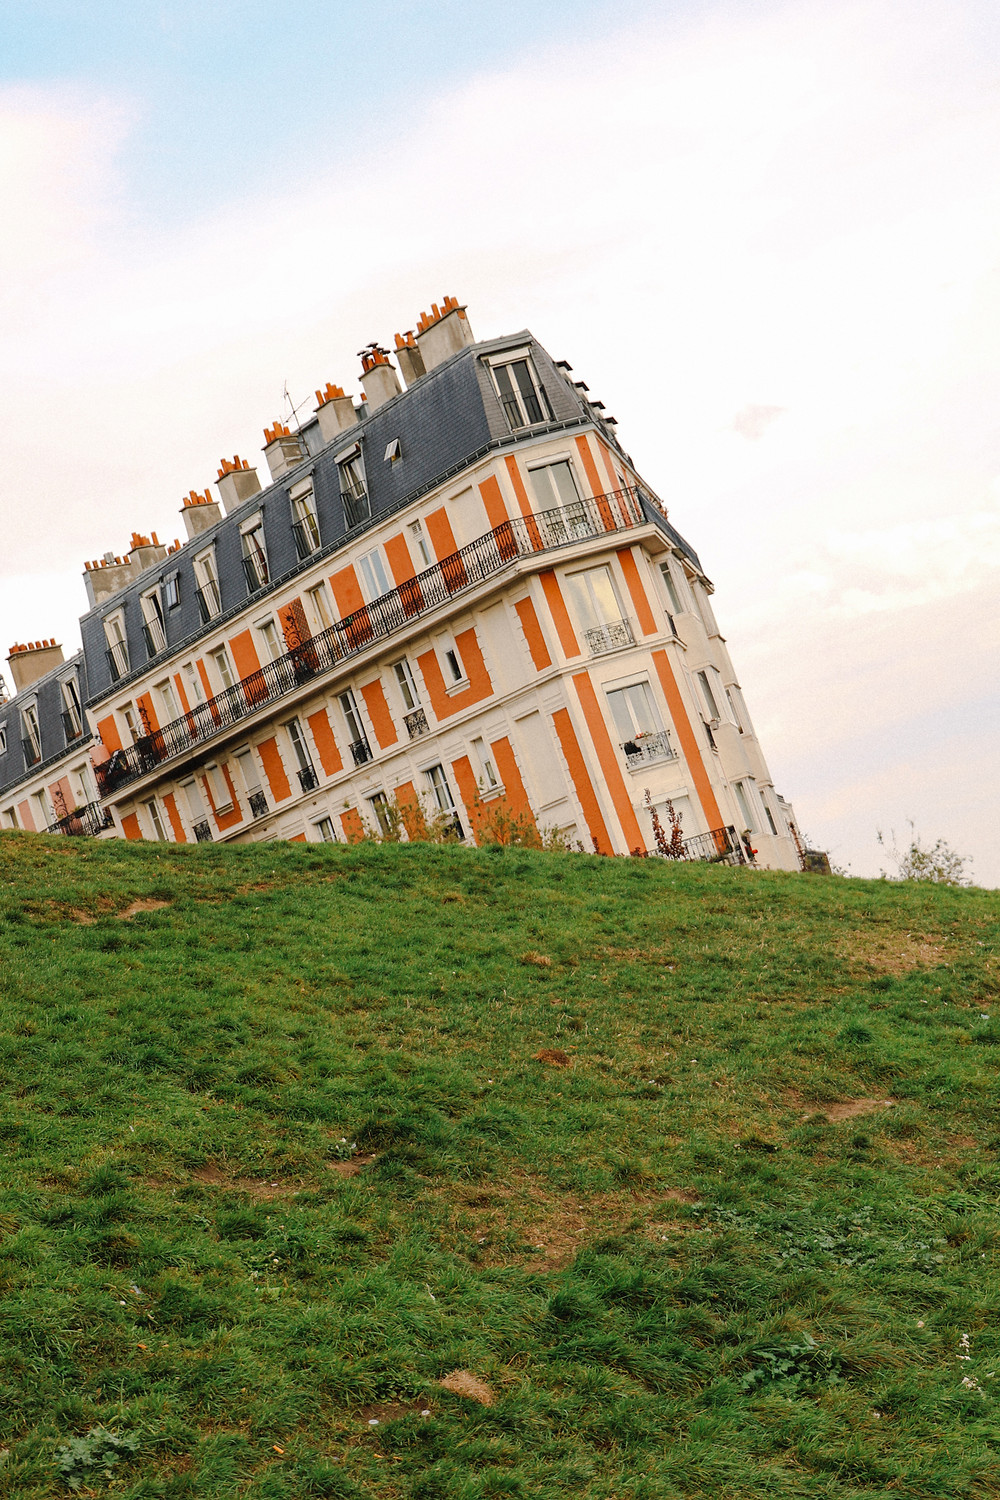 Sinking house of Montmartre